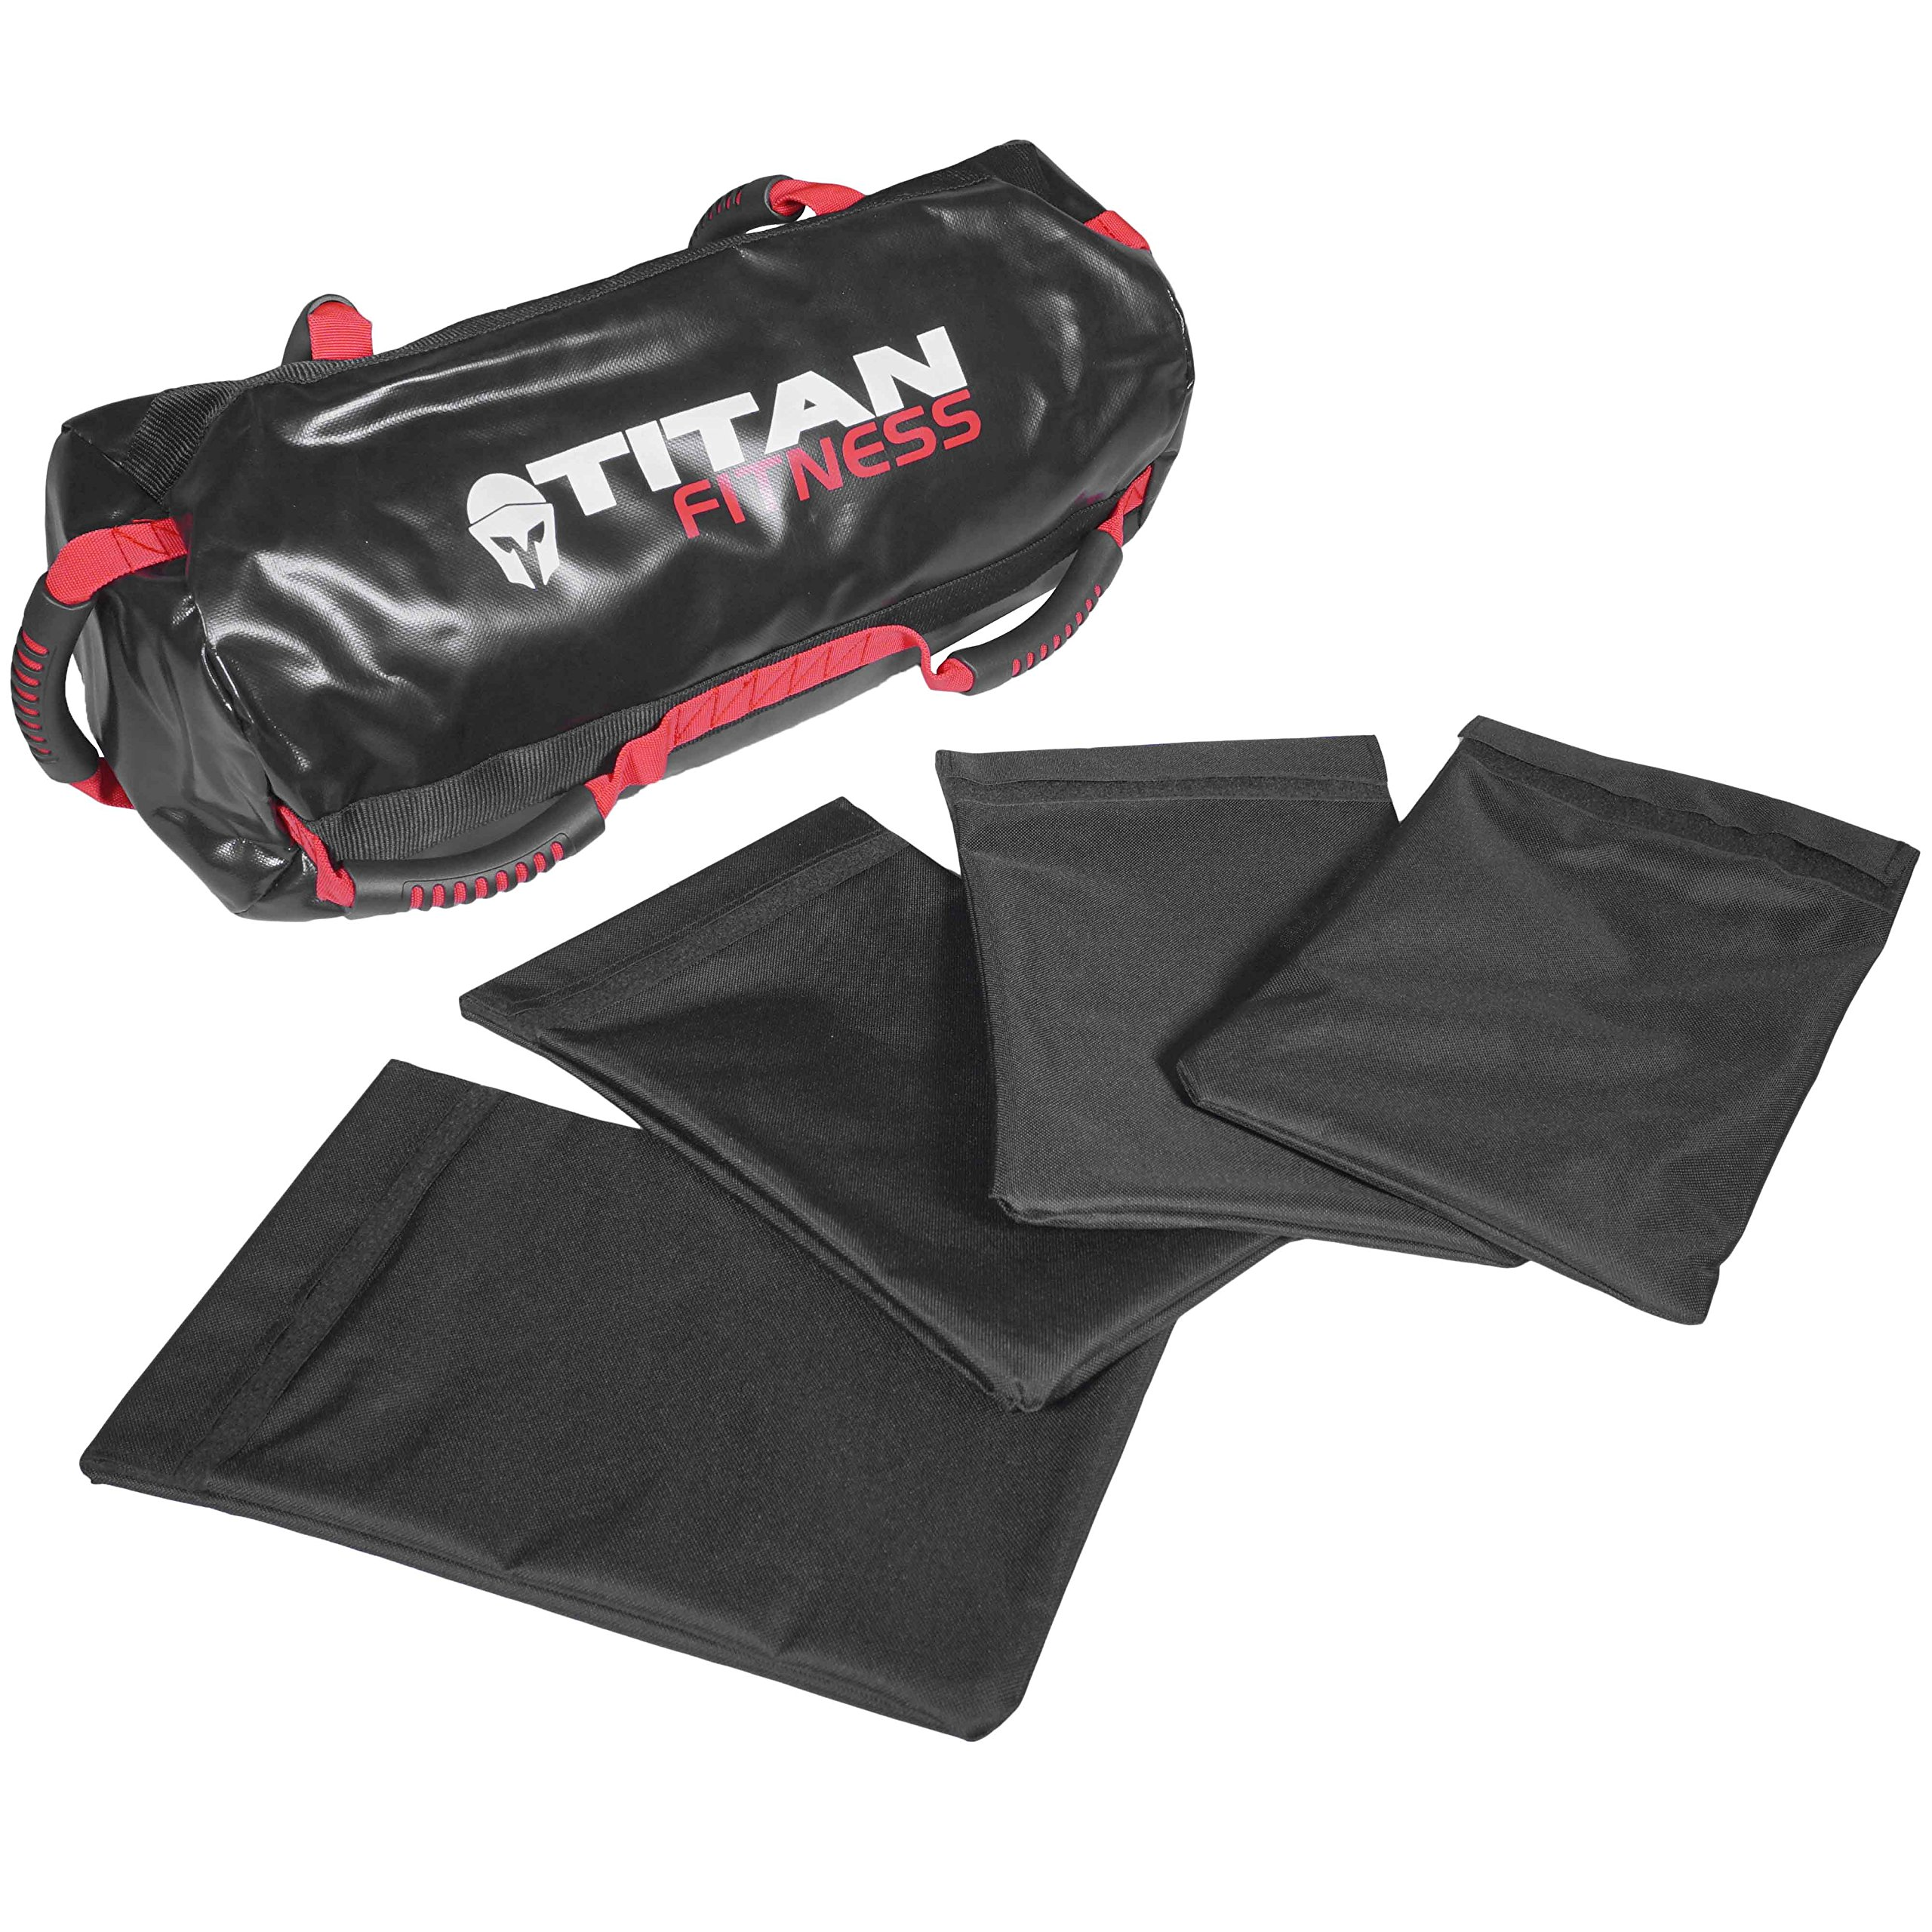 Titan Fitness 40 lb Heavy Duty Workout Weight Sandbag Exercise Training Bag by Titan Fitness